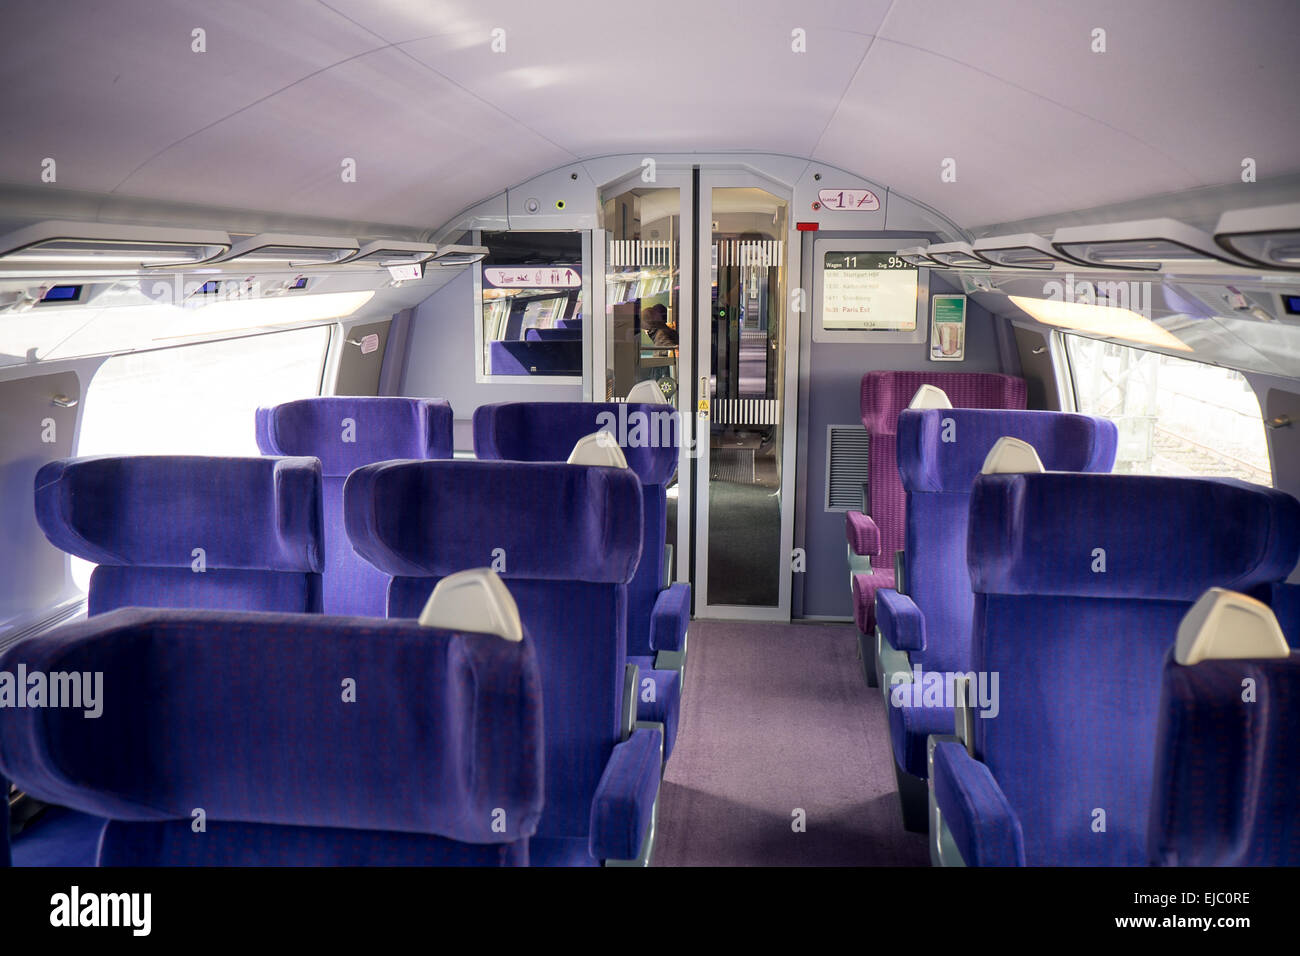 tgv high speed train france stockfotos tgv high speed train france bilder alamy. Black Bedroom Furniture Sets. Home Design Ideas